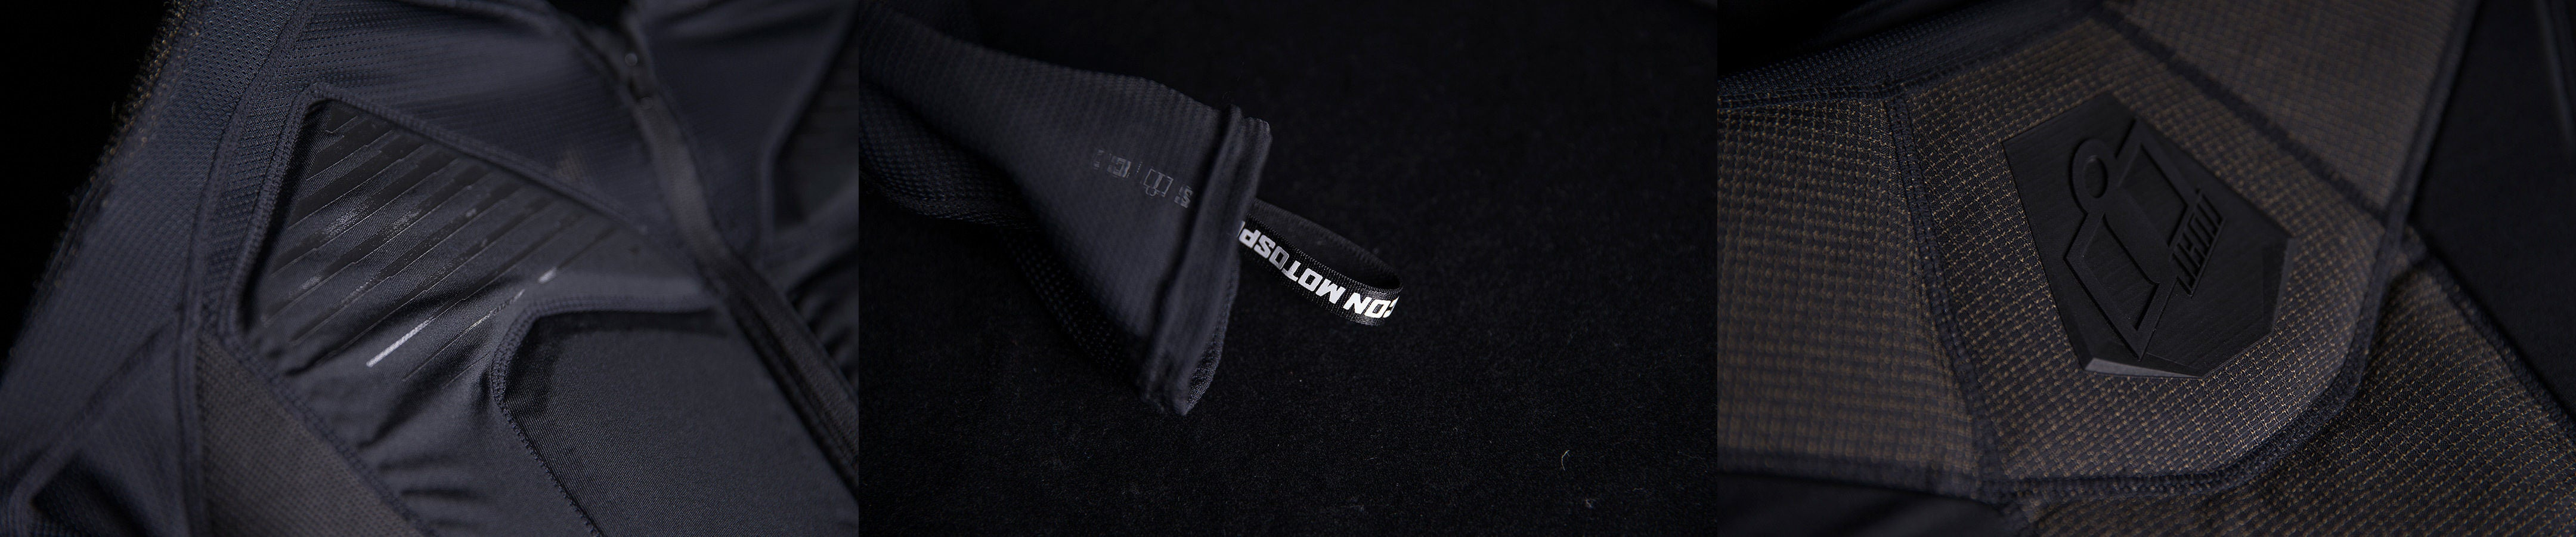 Icon Street Racing | Introducing The Field Armor Compression Shirt